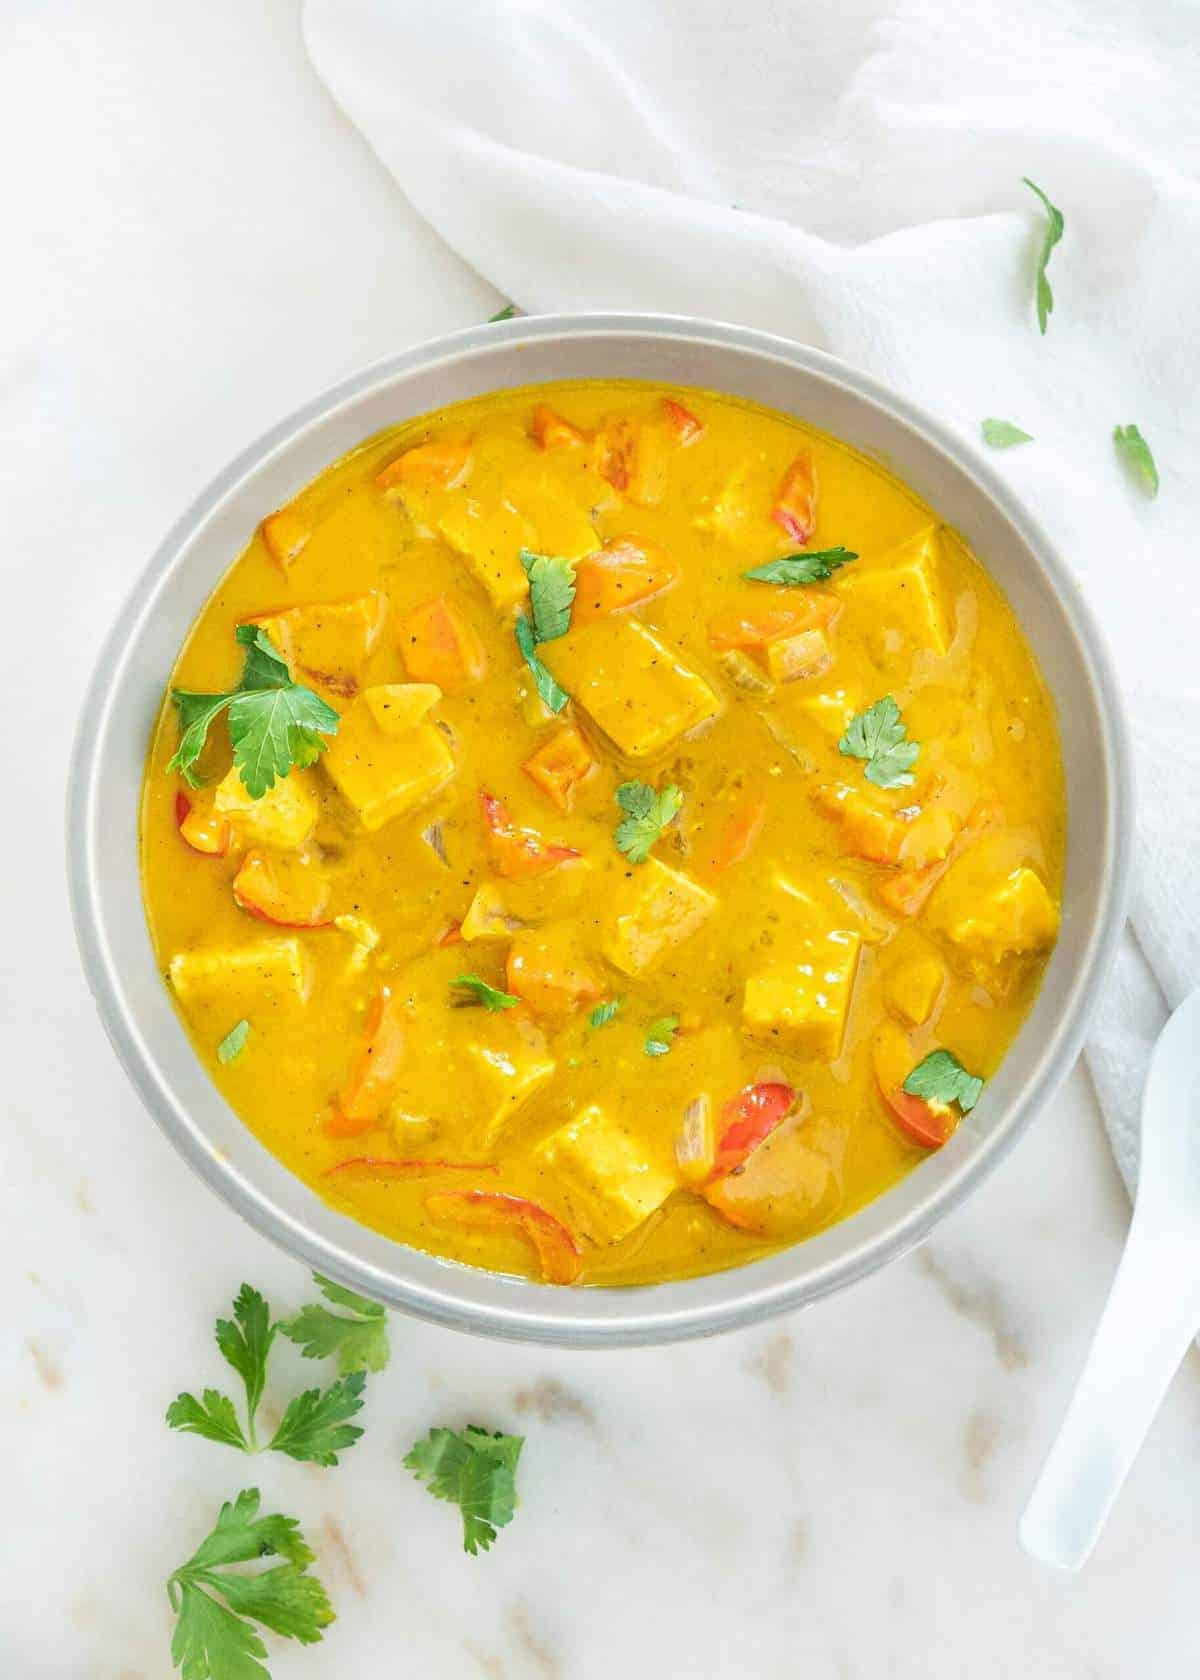 finished bowl of pumpkin curry against a white marble background